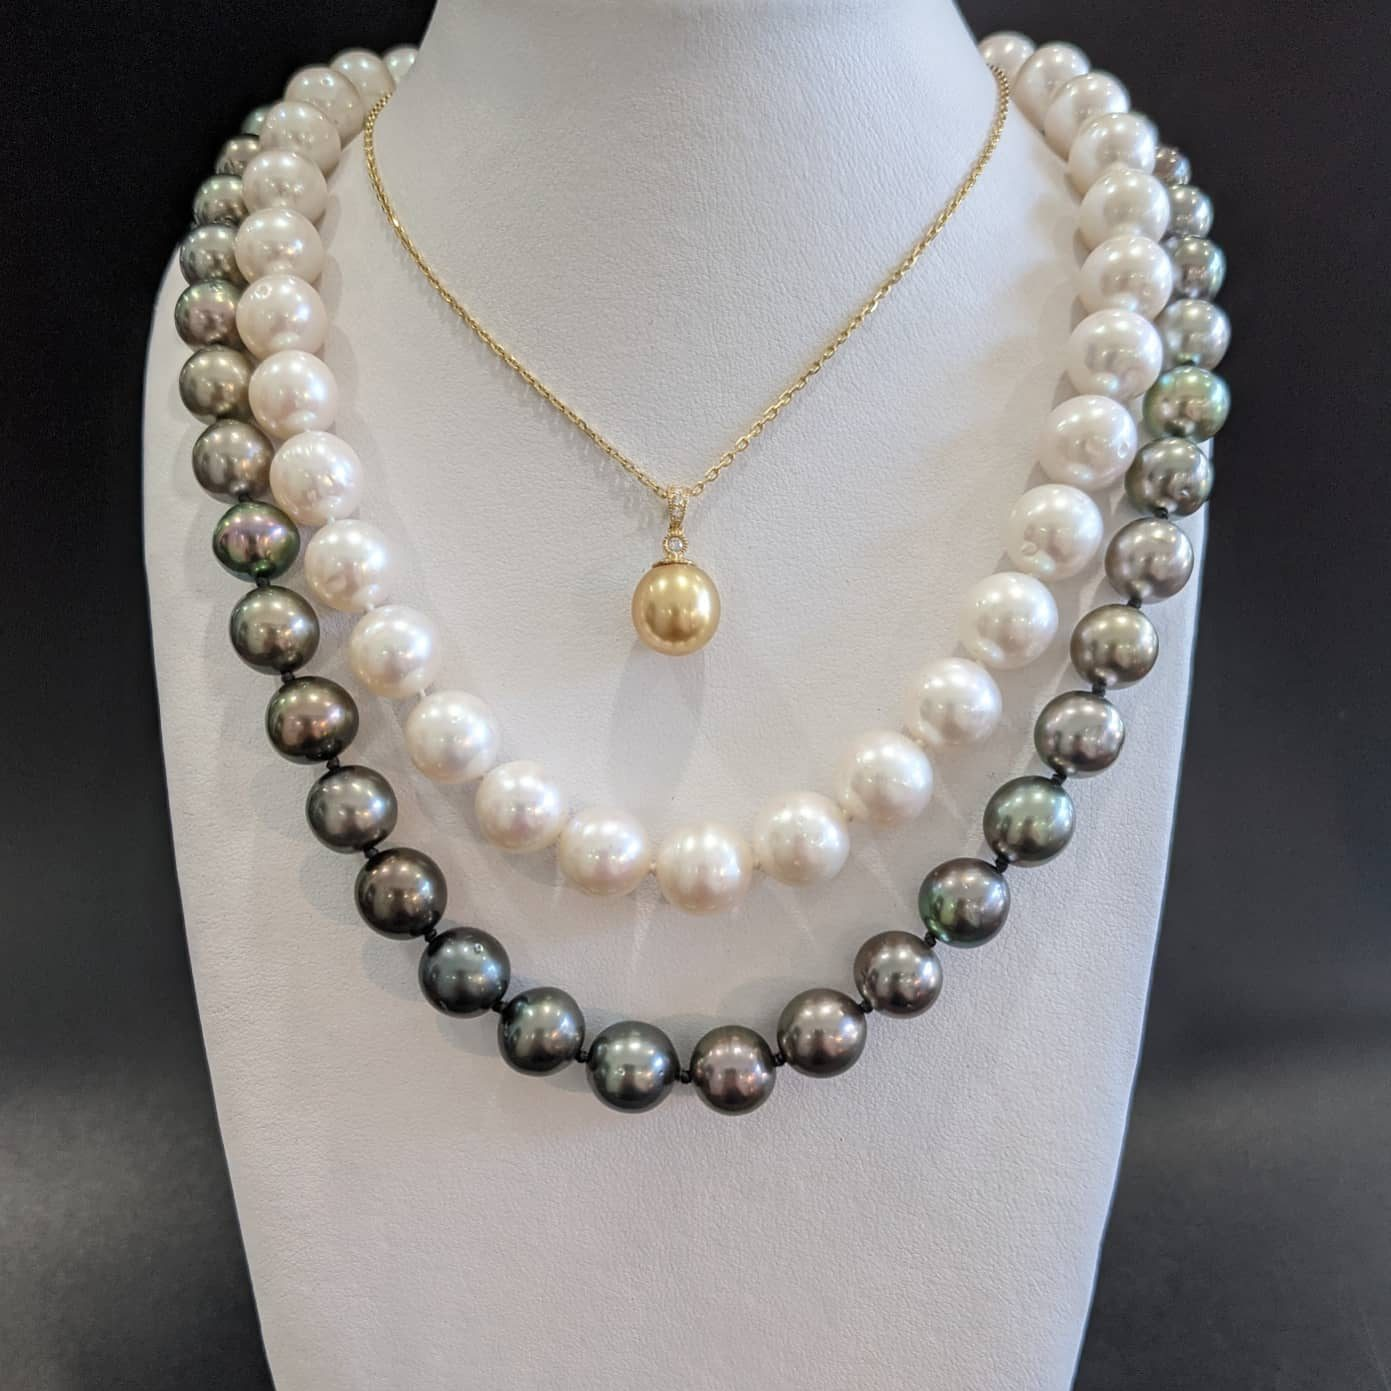 south sea pearl necklace strand. Tahitian pearl necklace strand. Gold south sea pearl and diamond pendant for women